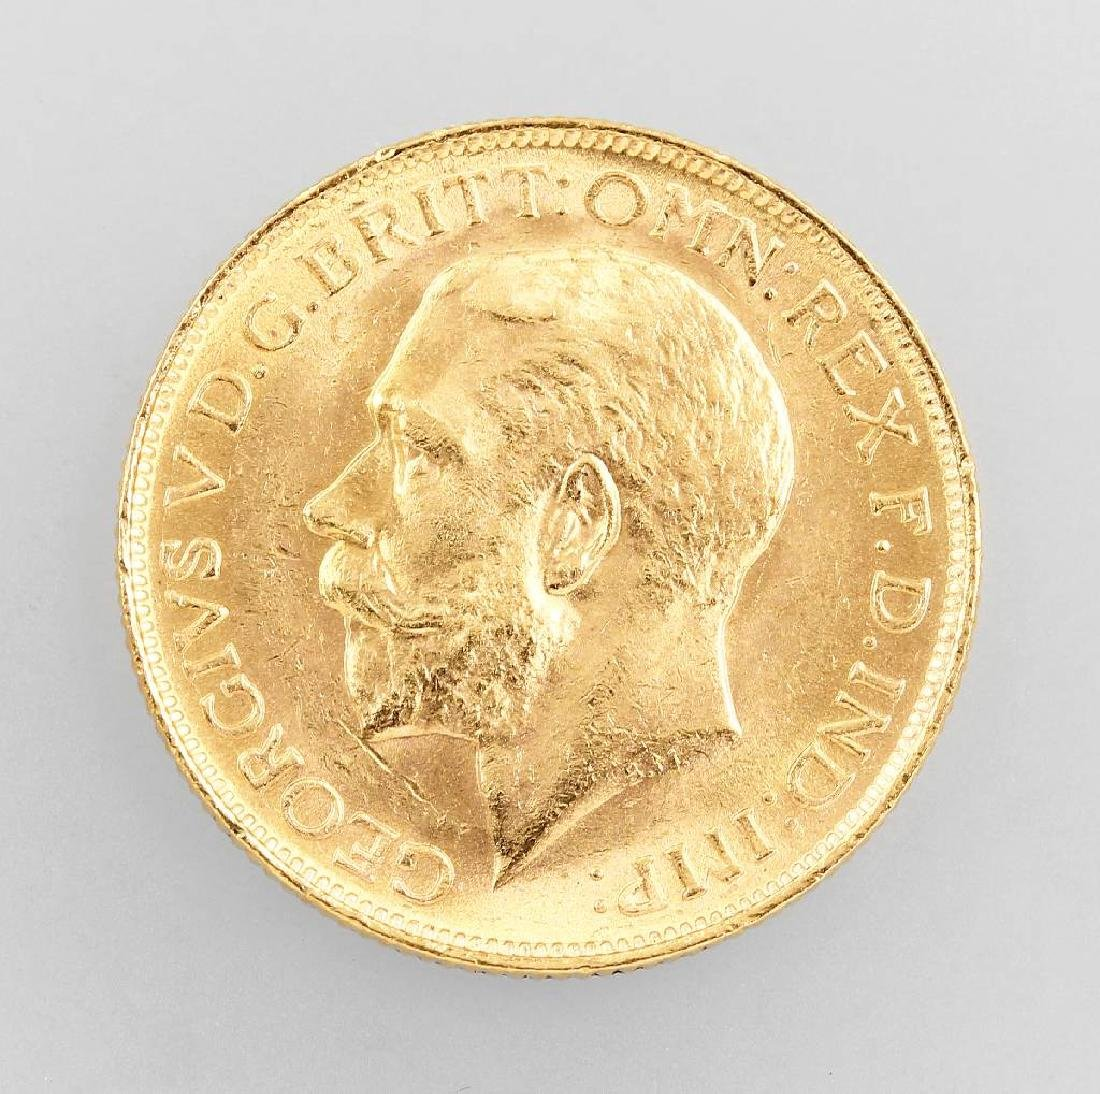 Gold coin, Sovereign, Great Britain, 1915